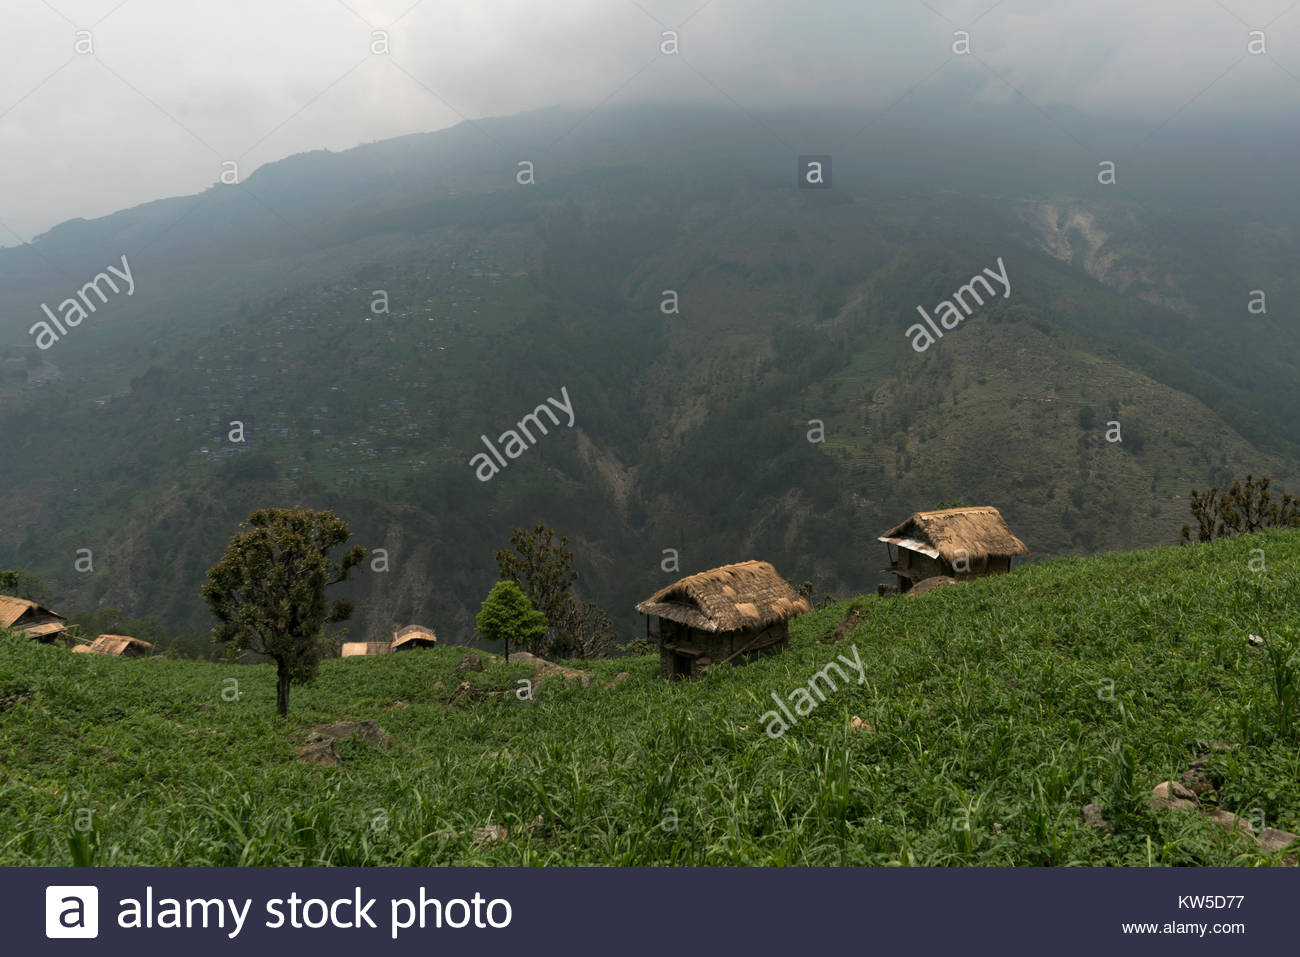 Built structures on a remote hill. - Stock Image